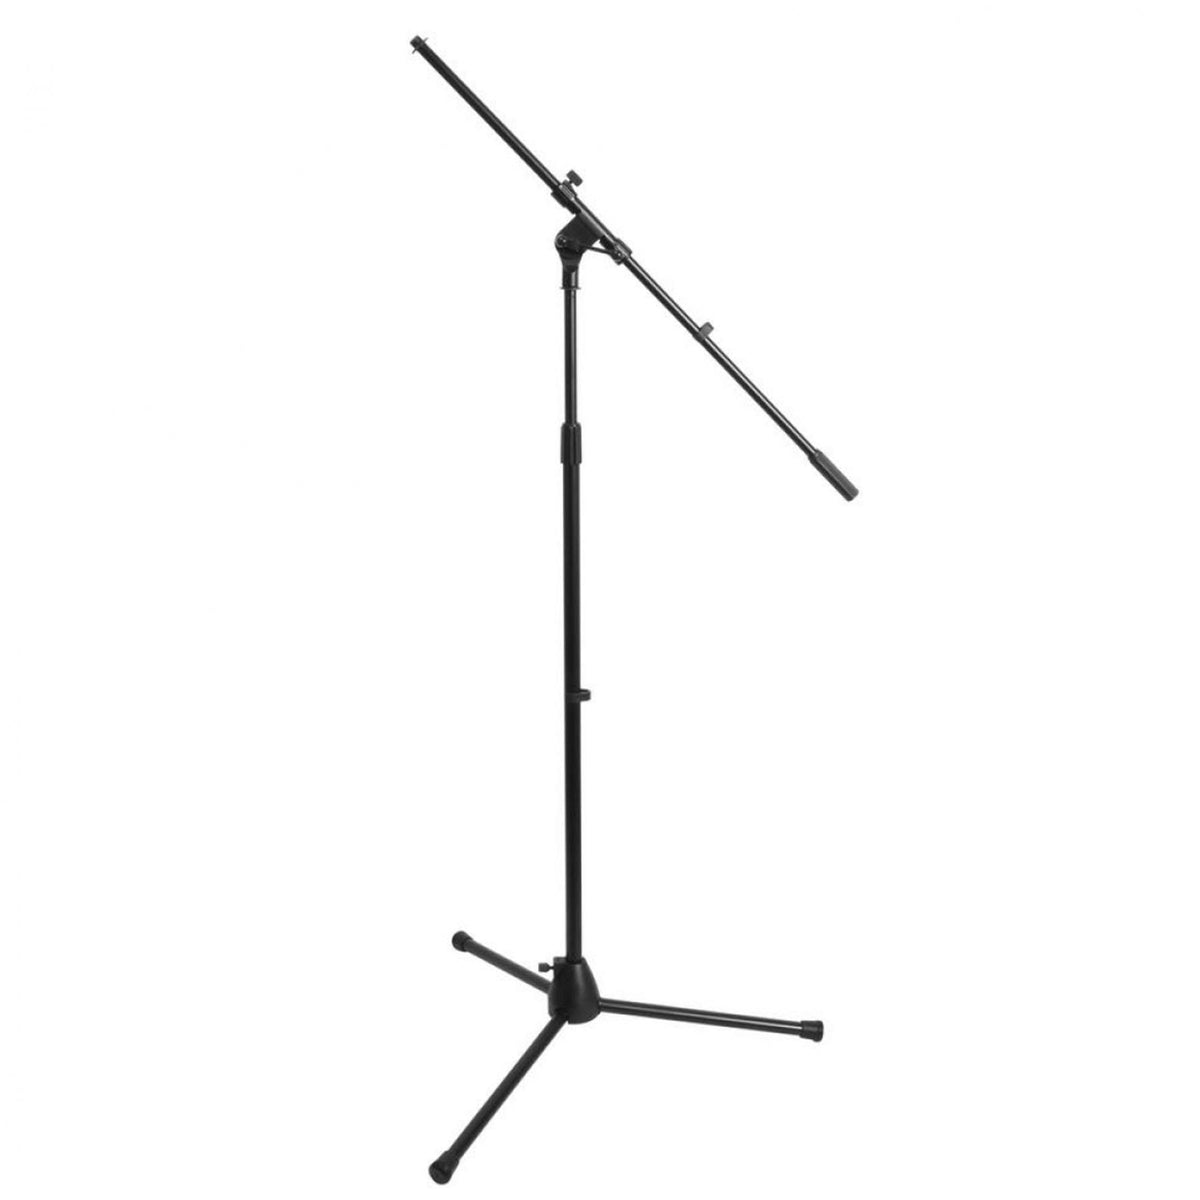 Sennheiser E609 Microphone Bundle with 20-foot XLR Cable & Stand